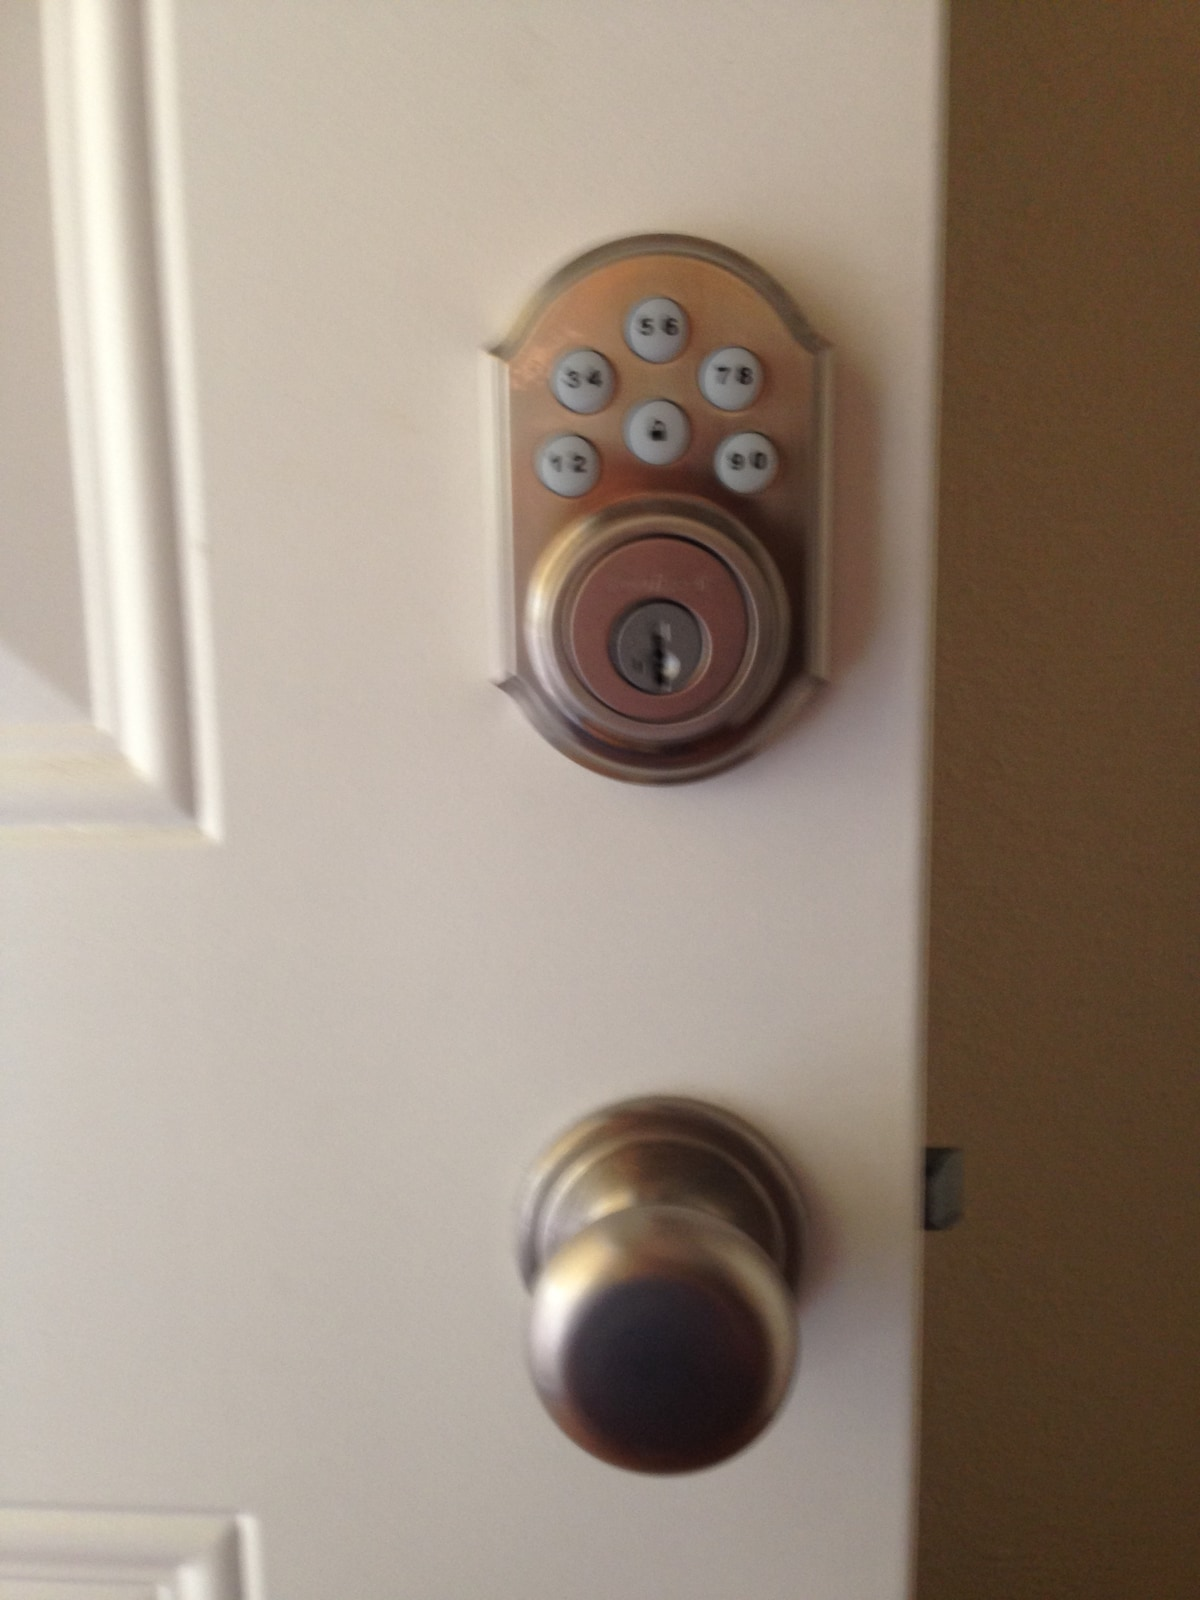 Our front door has a pin entry that makes it easy. No key exchange!